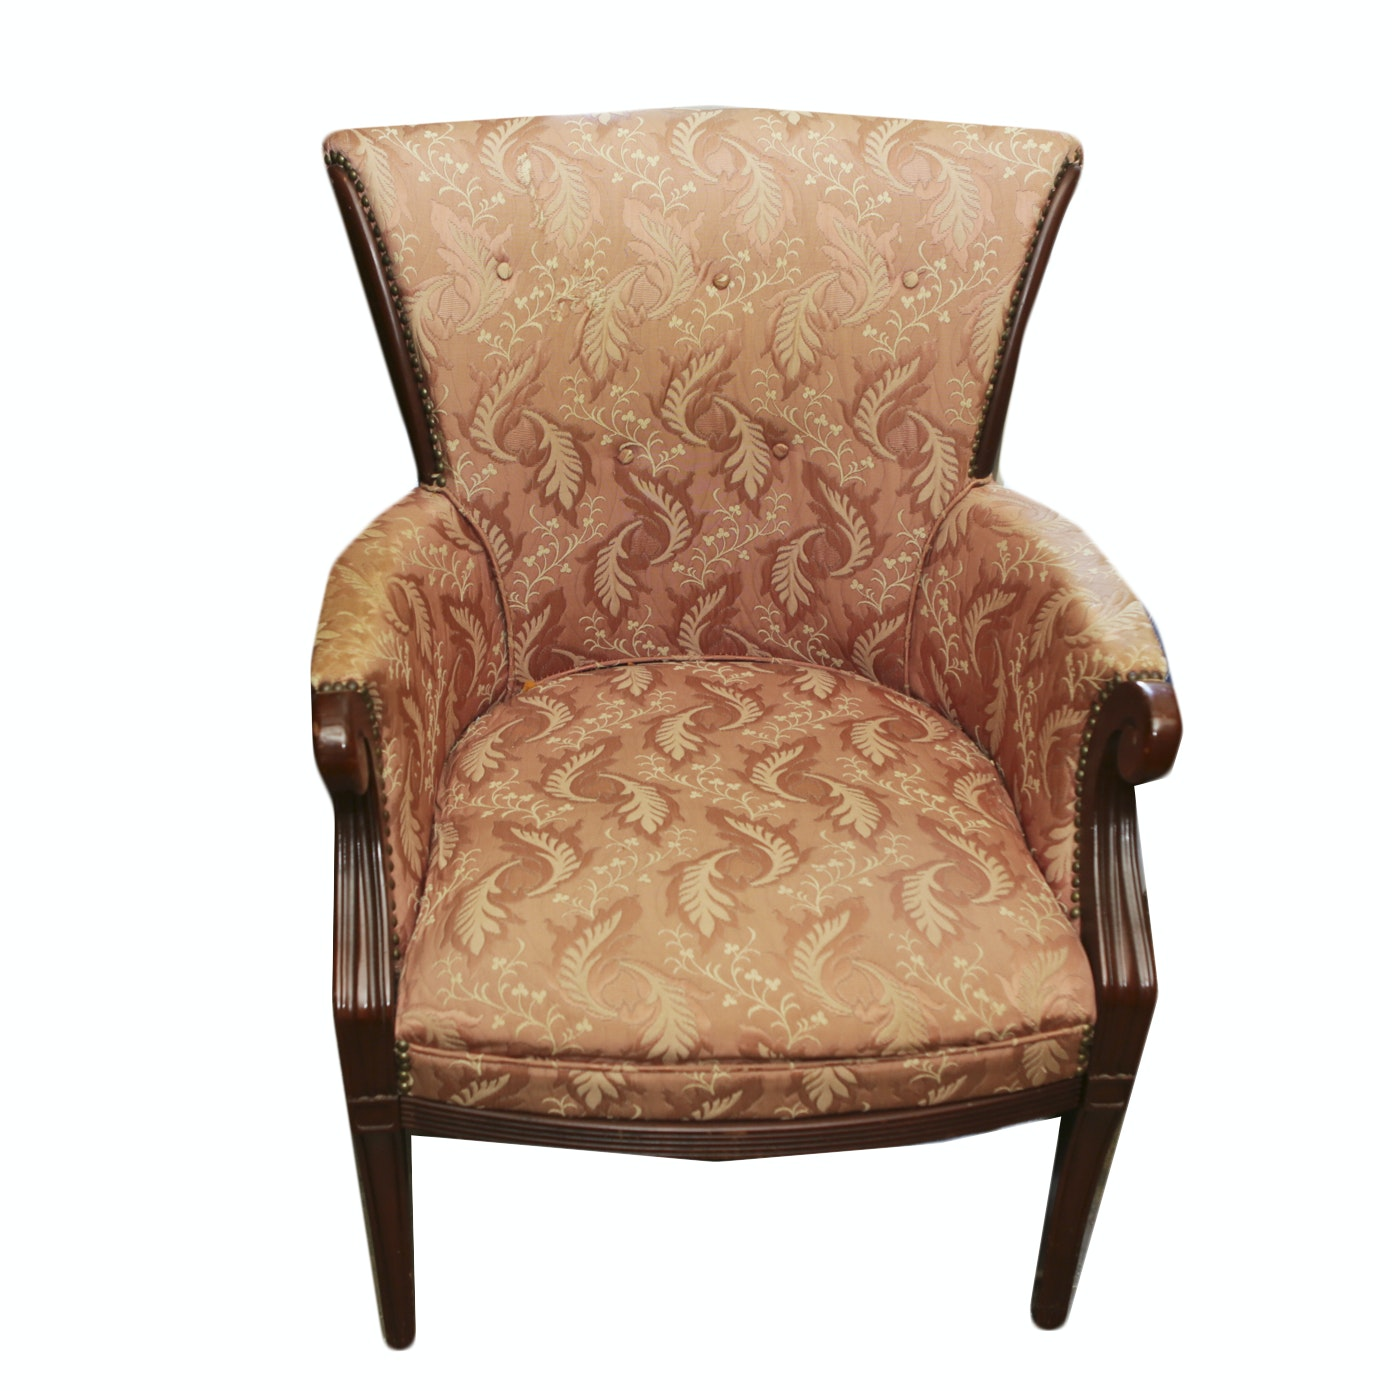 Vintage Neoclassical Style Upholstered Armchair